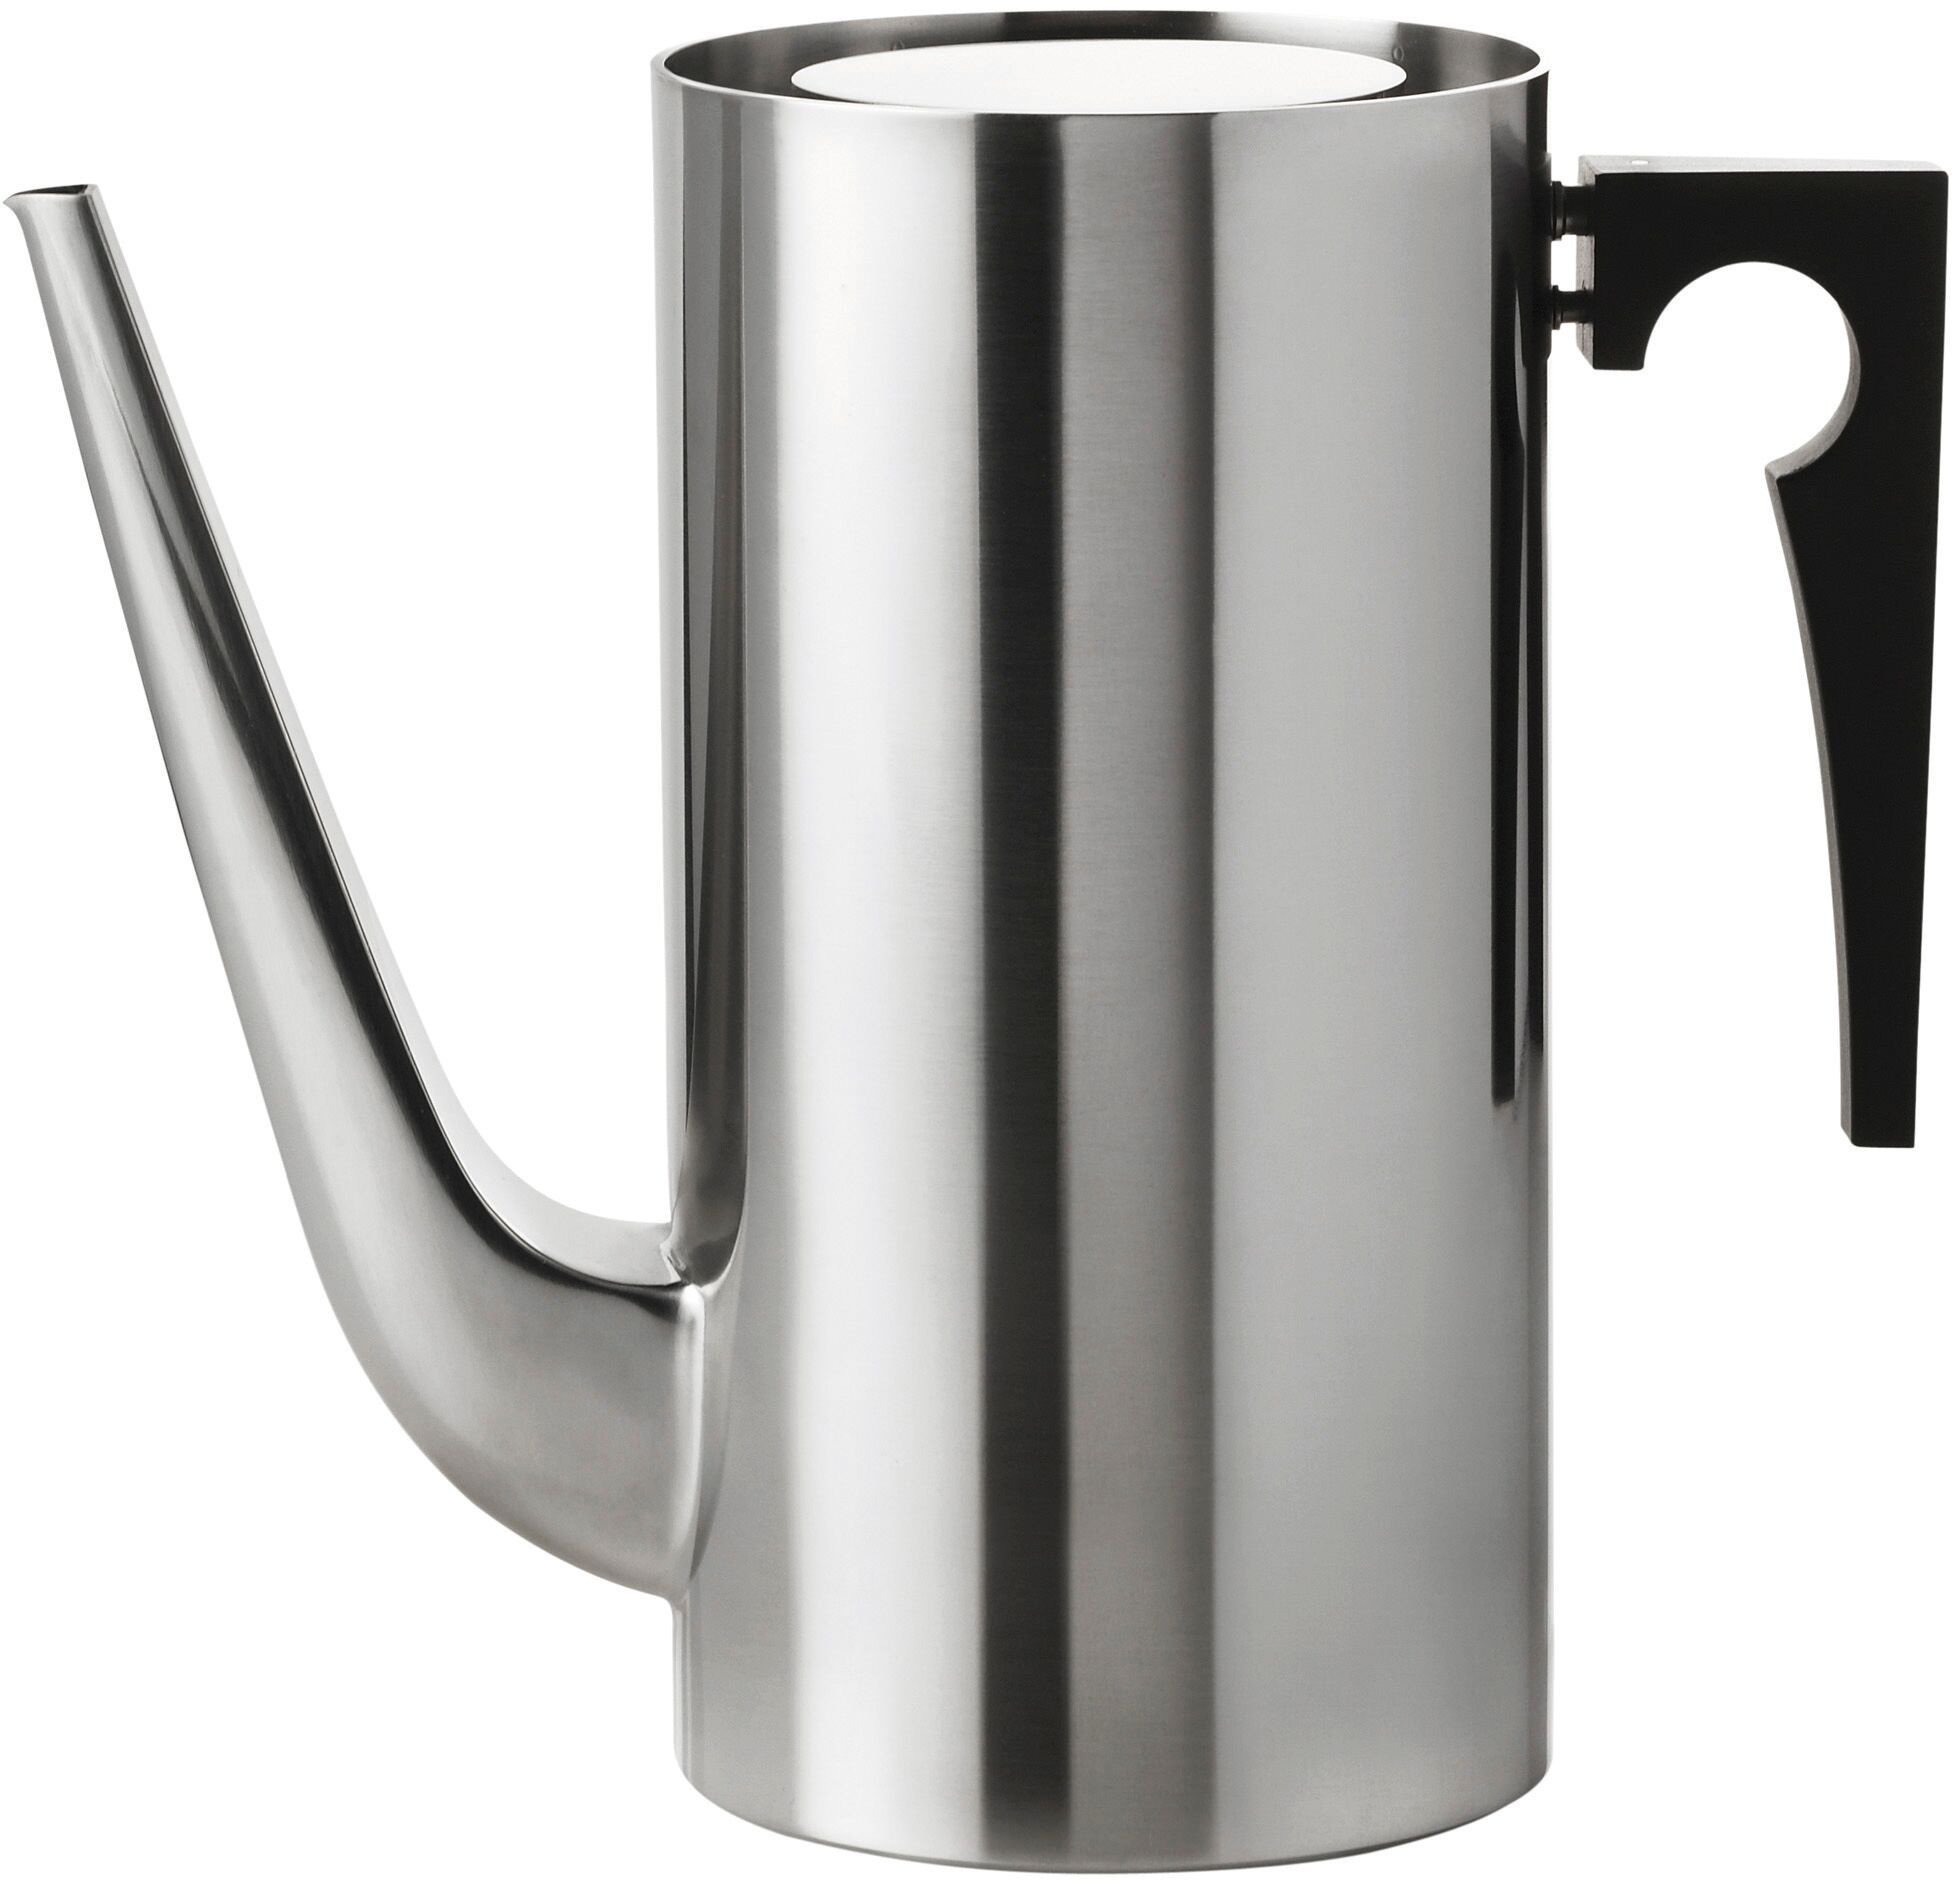 Cylinda-line Coffee Pot 1,5 L by A. Jacobsen for Stelton